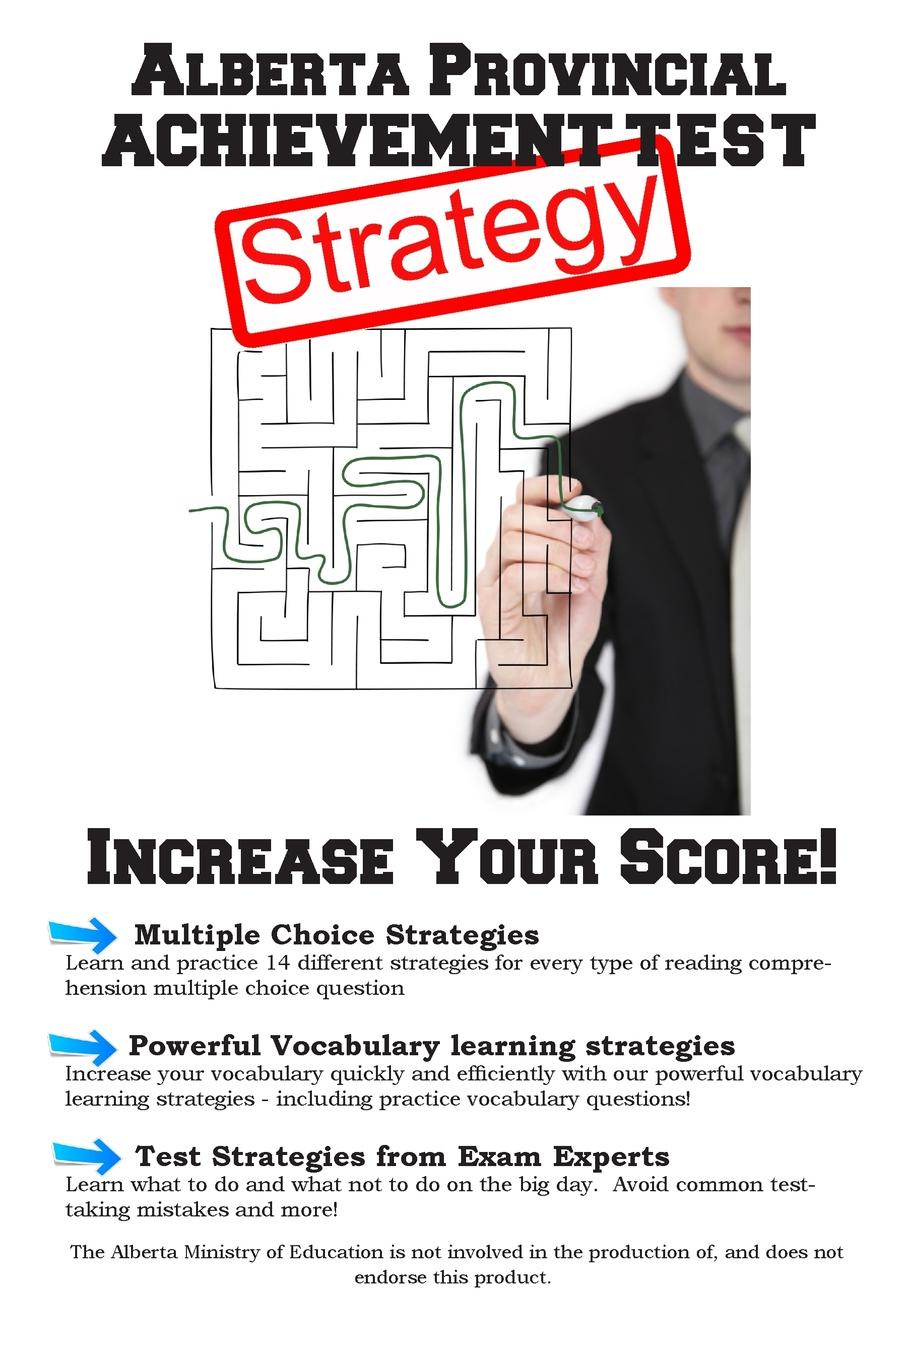 Complete Test Preparation Inc. Alberta Provincial Achievement Test Strategy. Winning Multiple Choice Strategies for the Alberta Provincial Achievement Test marcus alexander strategy for the corporate level where to invest what to cut back and how to grow organisations with multiple divisions